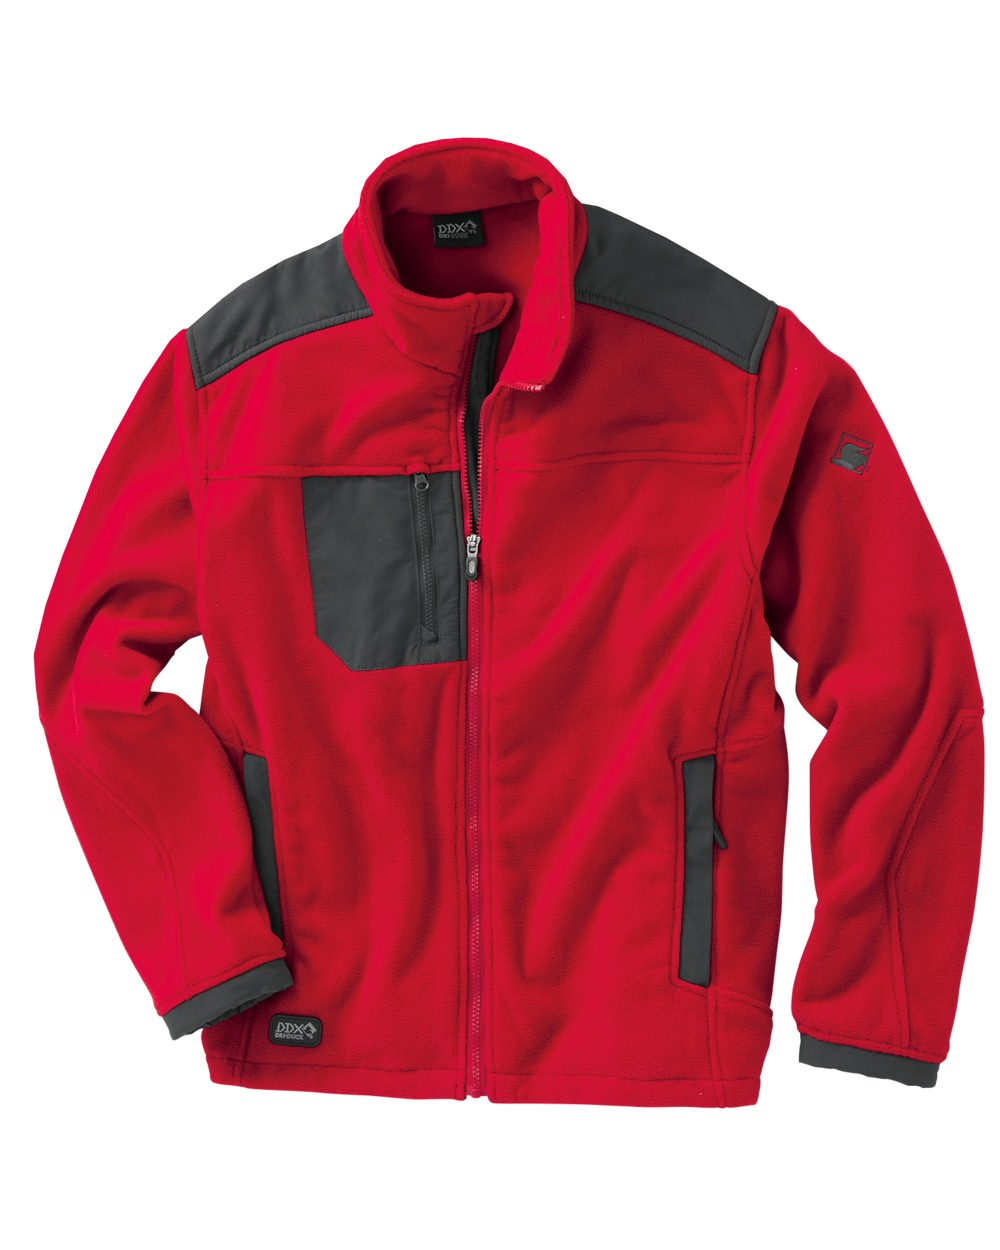 DRI DUCK 7350 - Quest Microfleece Full-Zip Jacket with ...